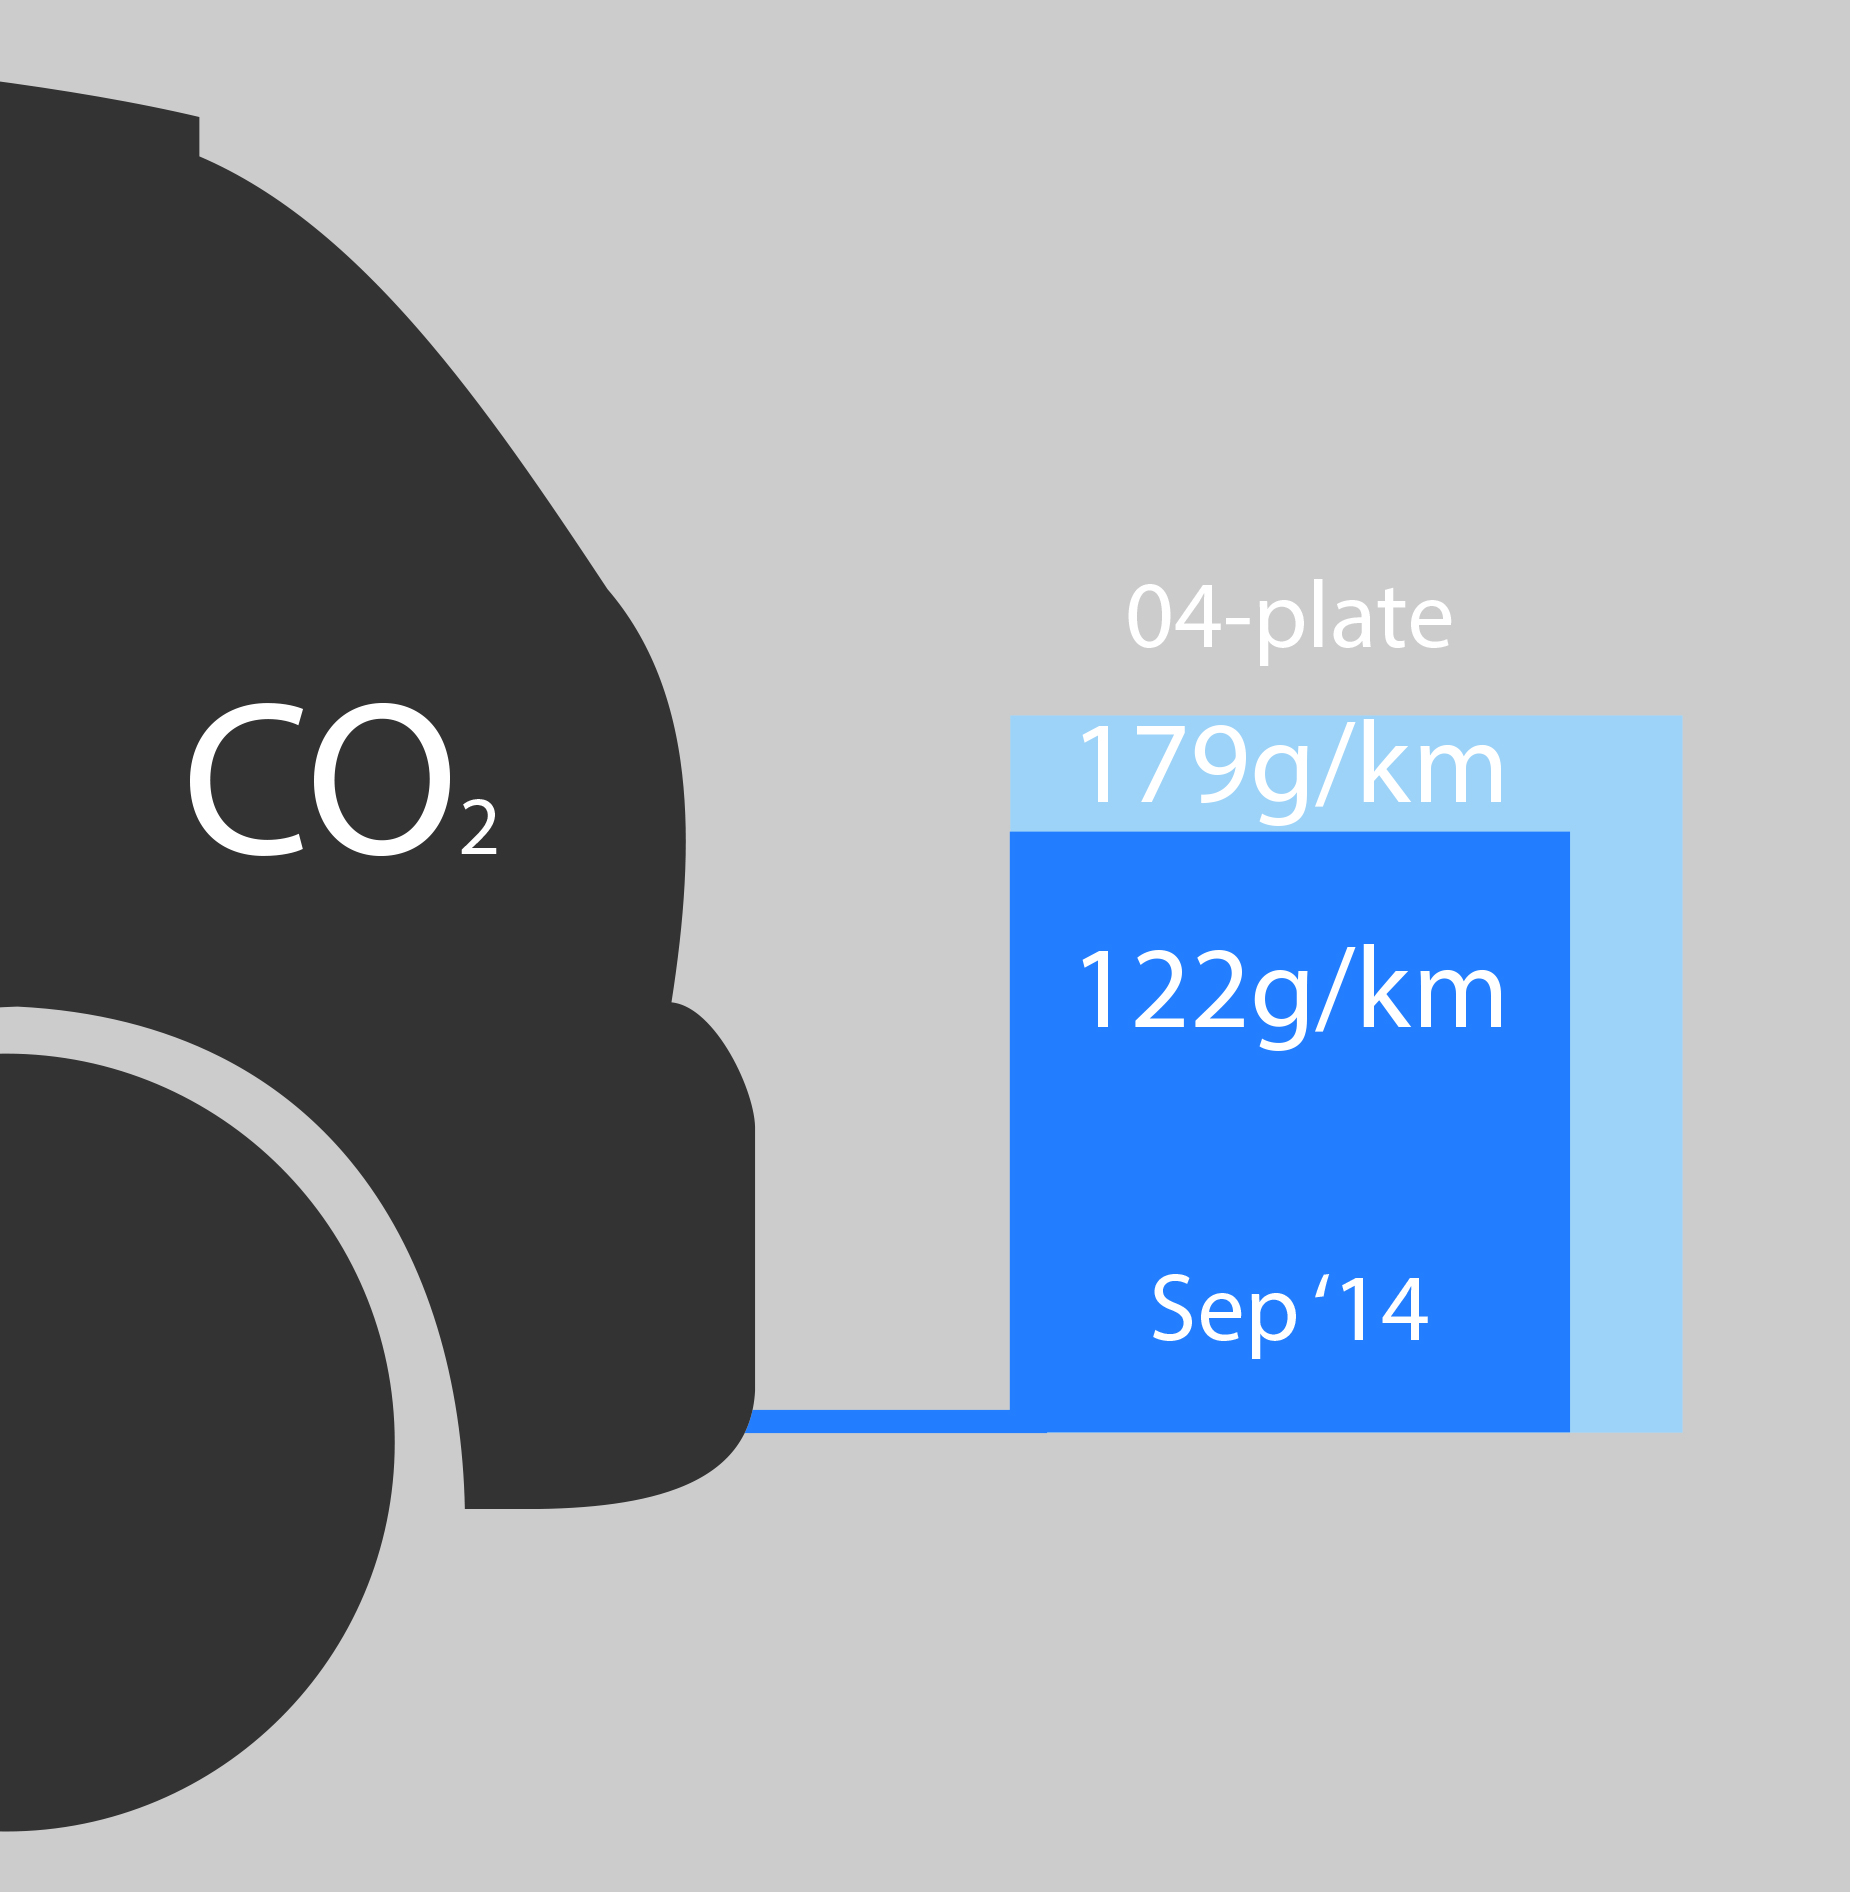 CO2 emissions 04-plate vs. September 2014